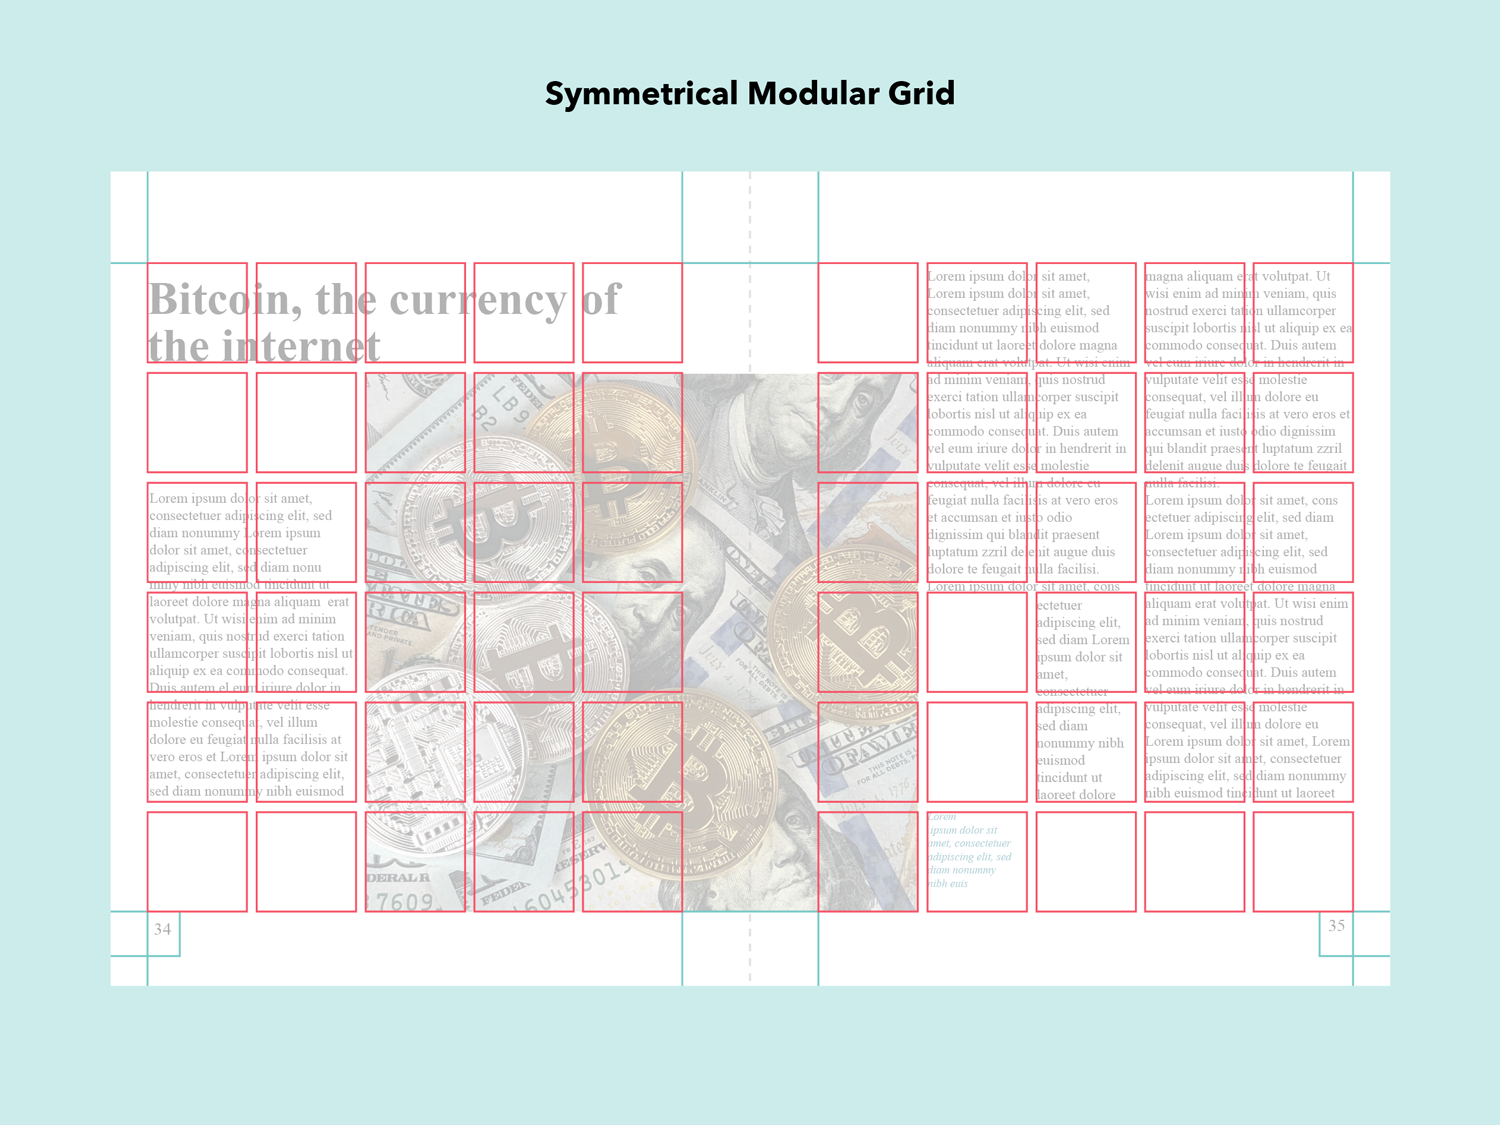 modular grid layout design types of grids grid design grid system